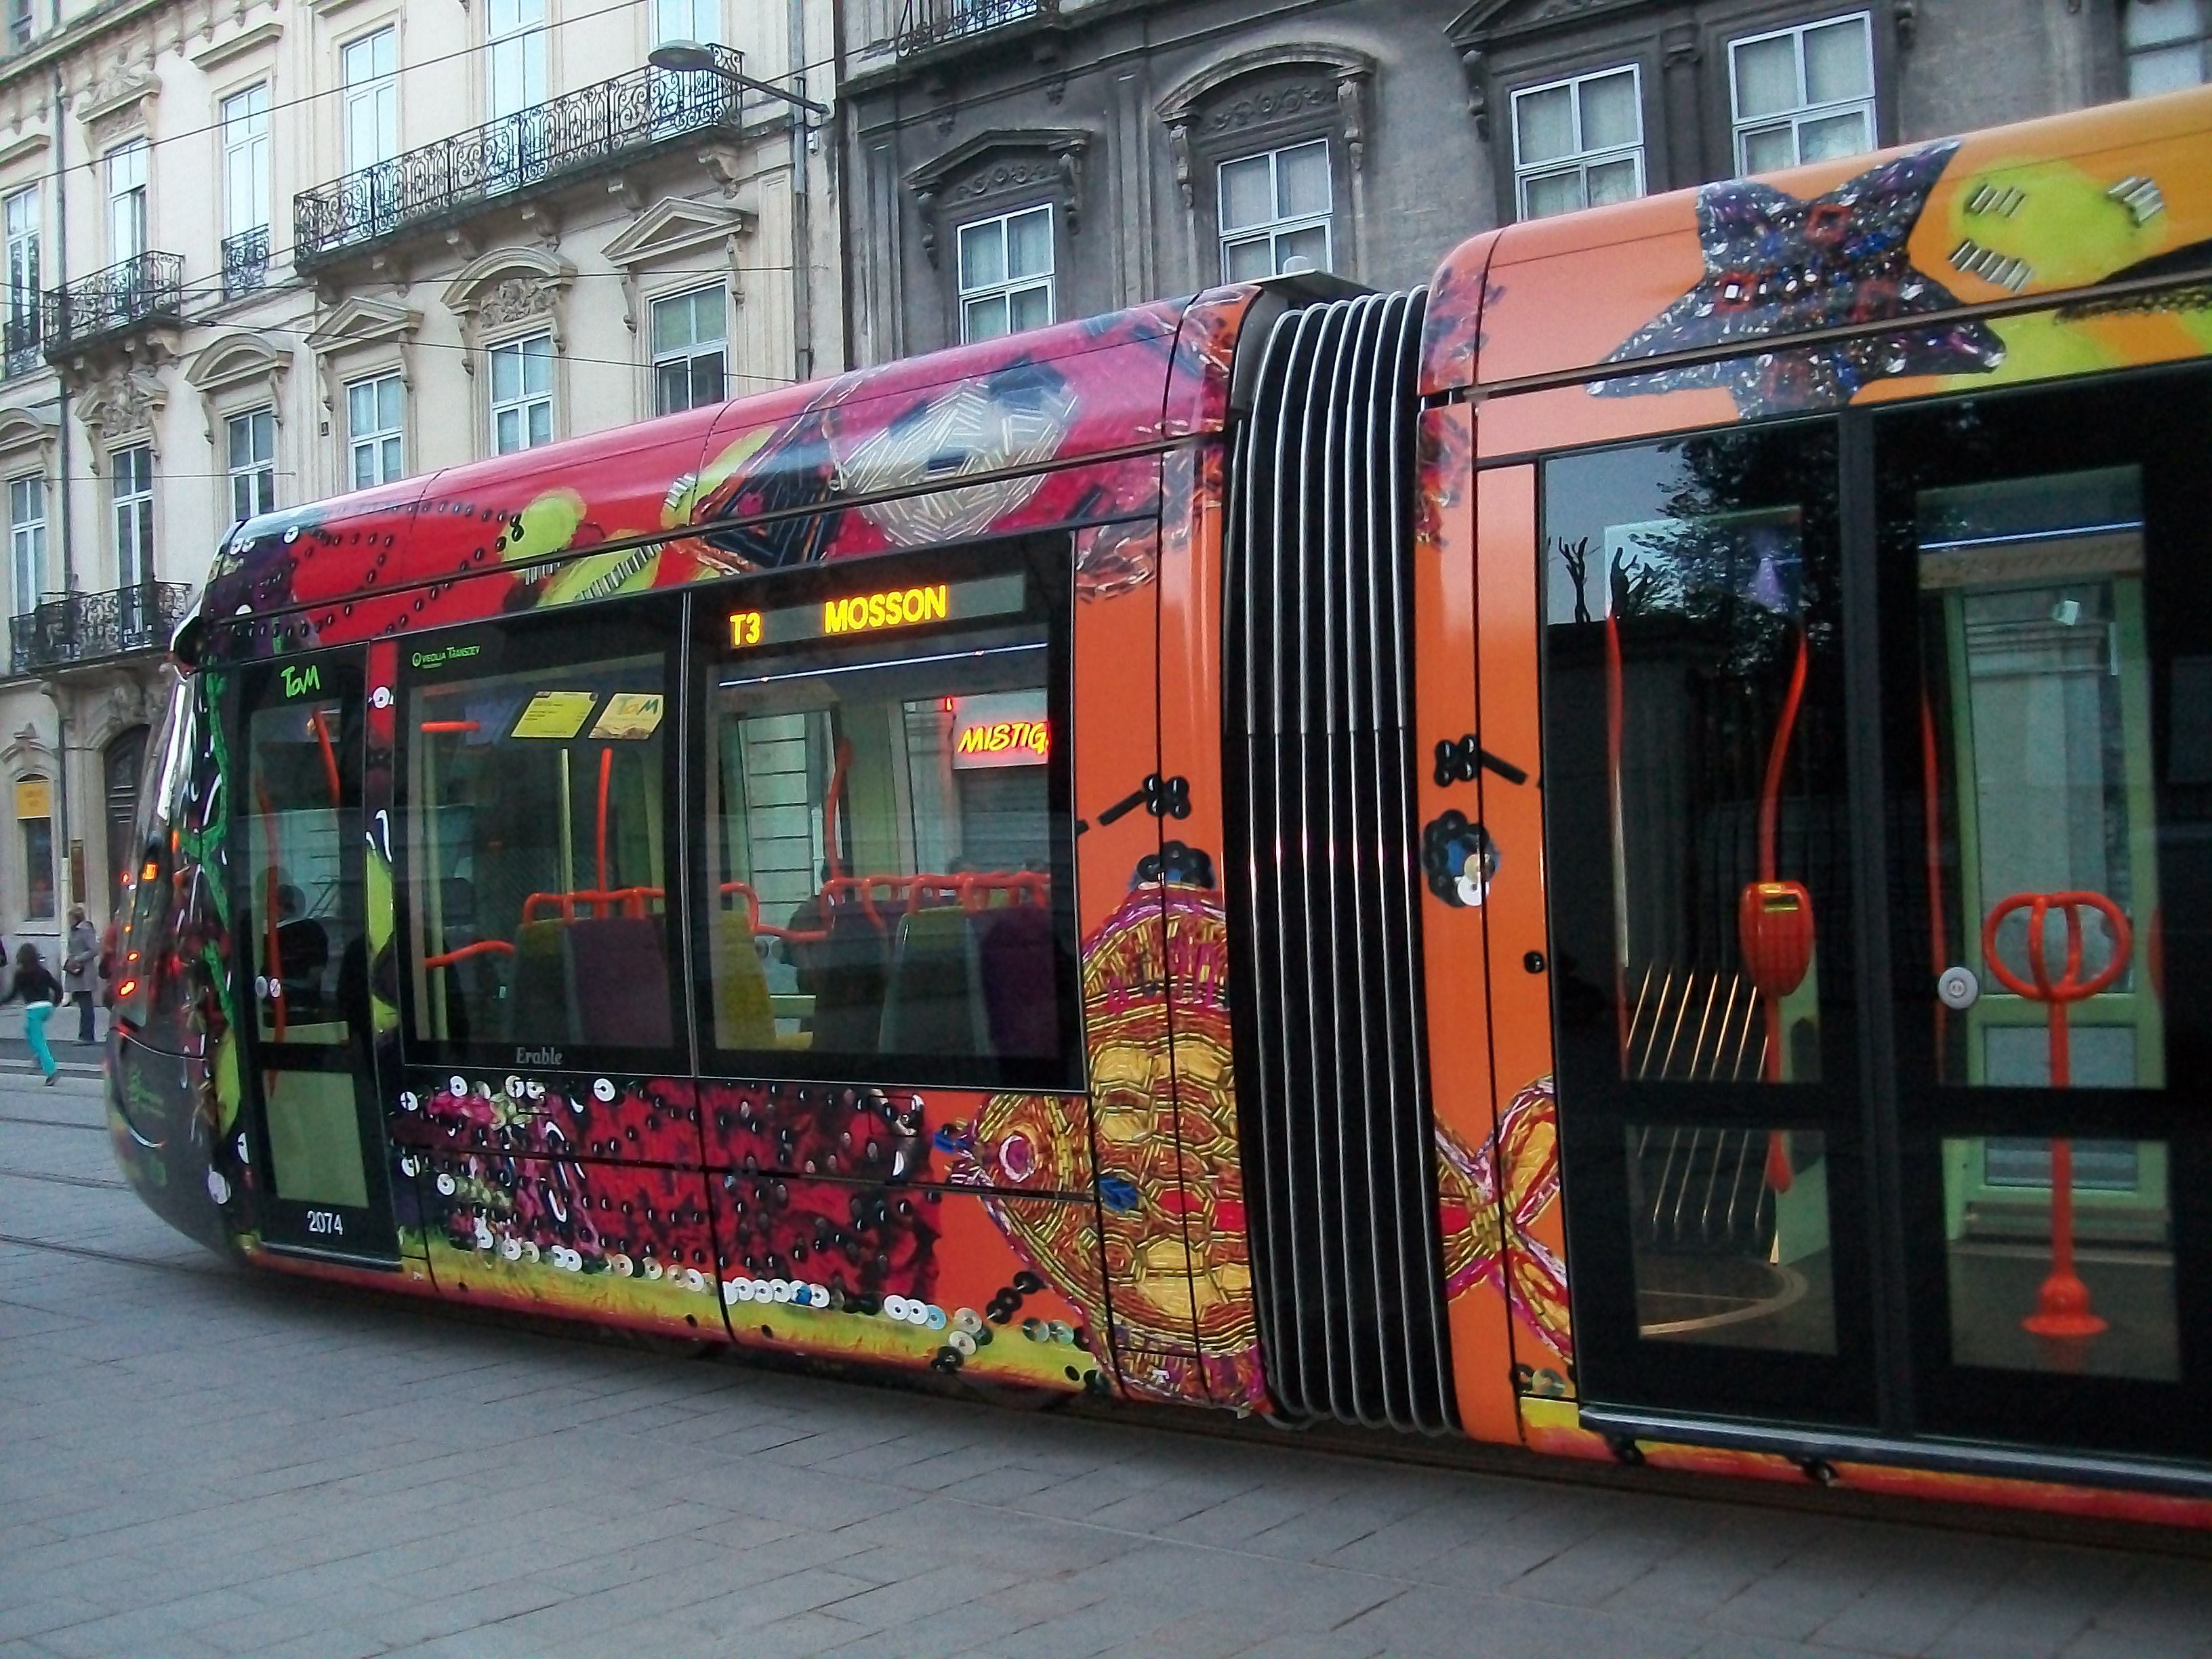 file tramway montpellier ligne 3 jpg wikimedia commons. Black Bedroom Furniture Sets. Home Design Ideas